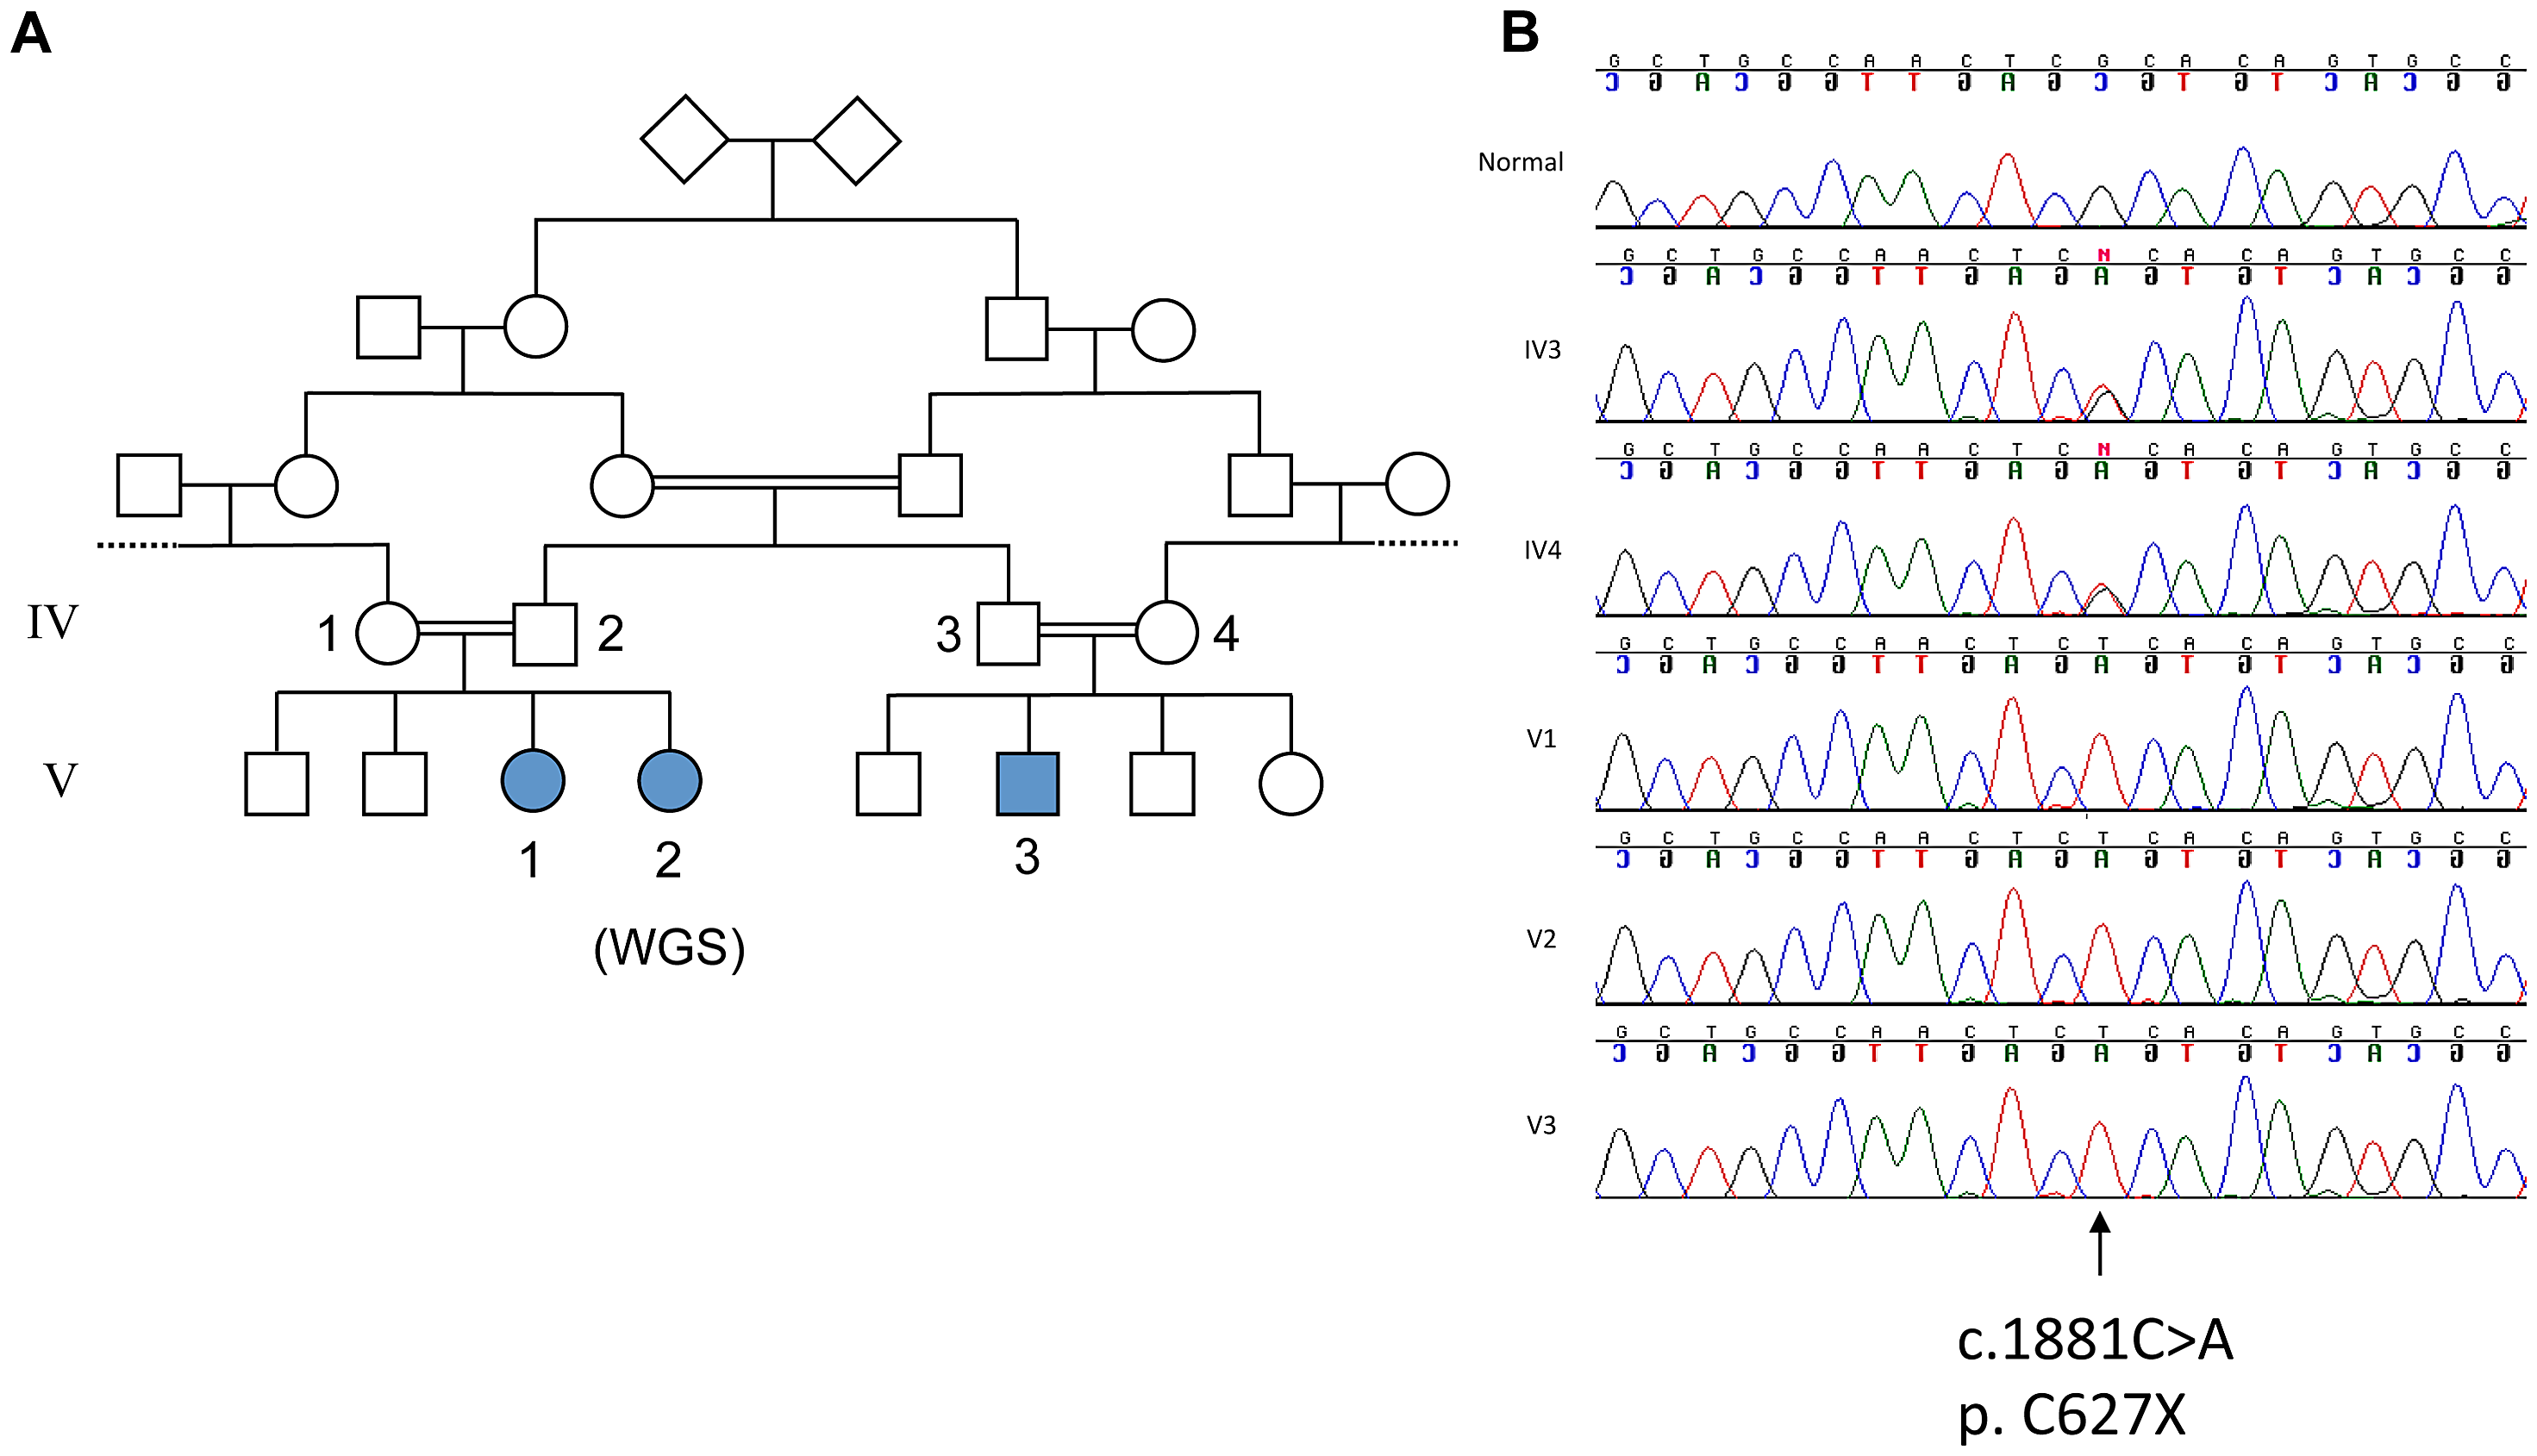 Genetic analysis of family with ataxia and cognitive impairment.